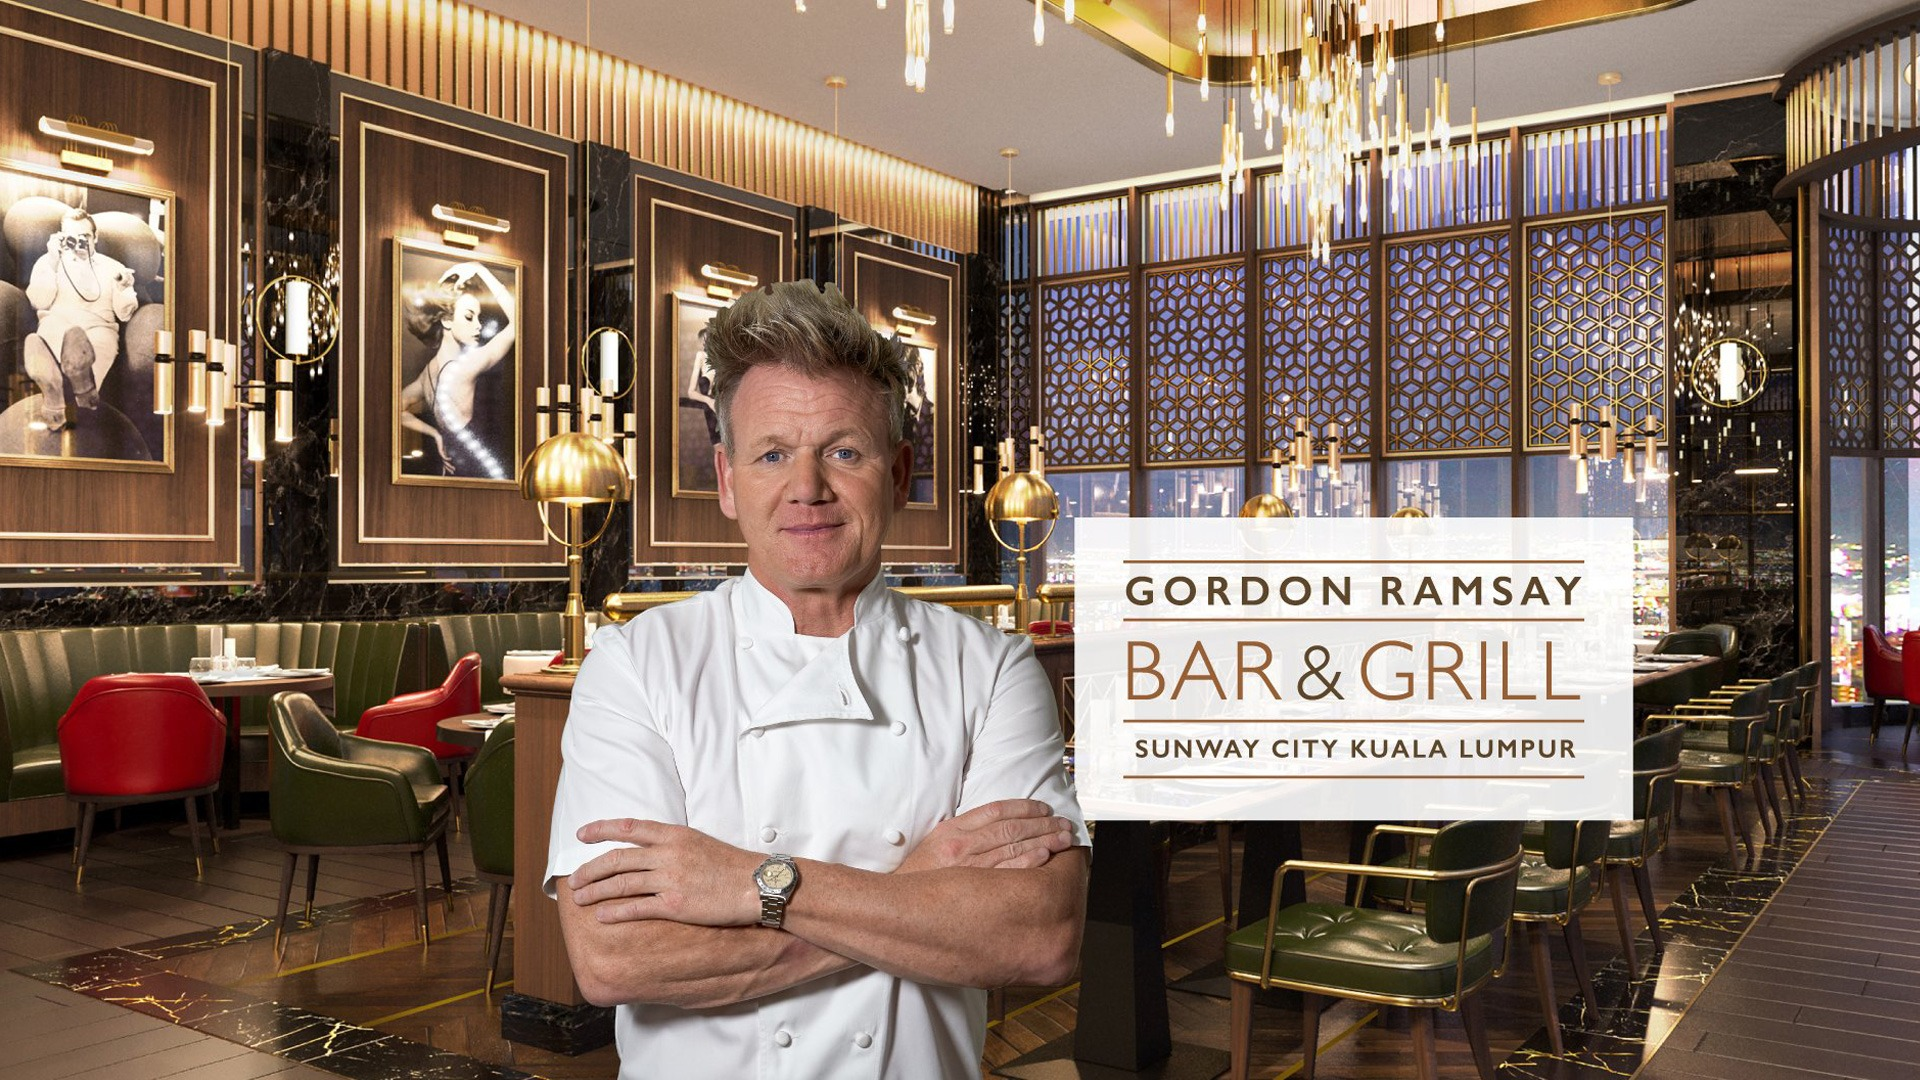 5 Things You Did Not Know About Gordon Ramsey